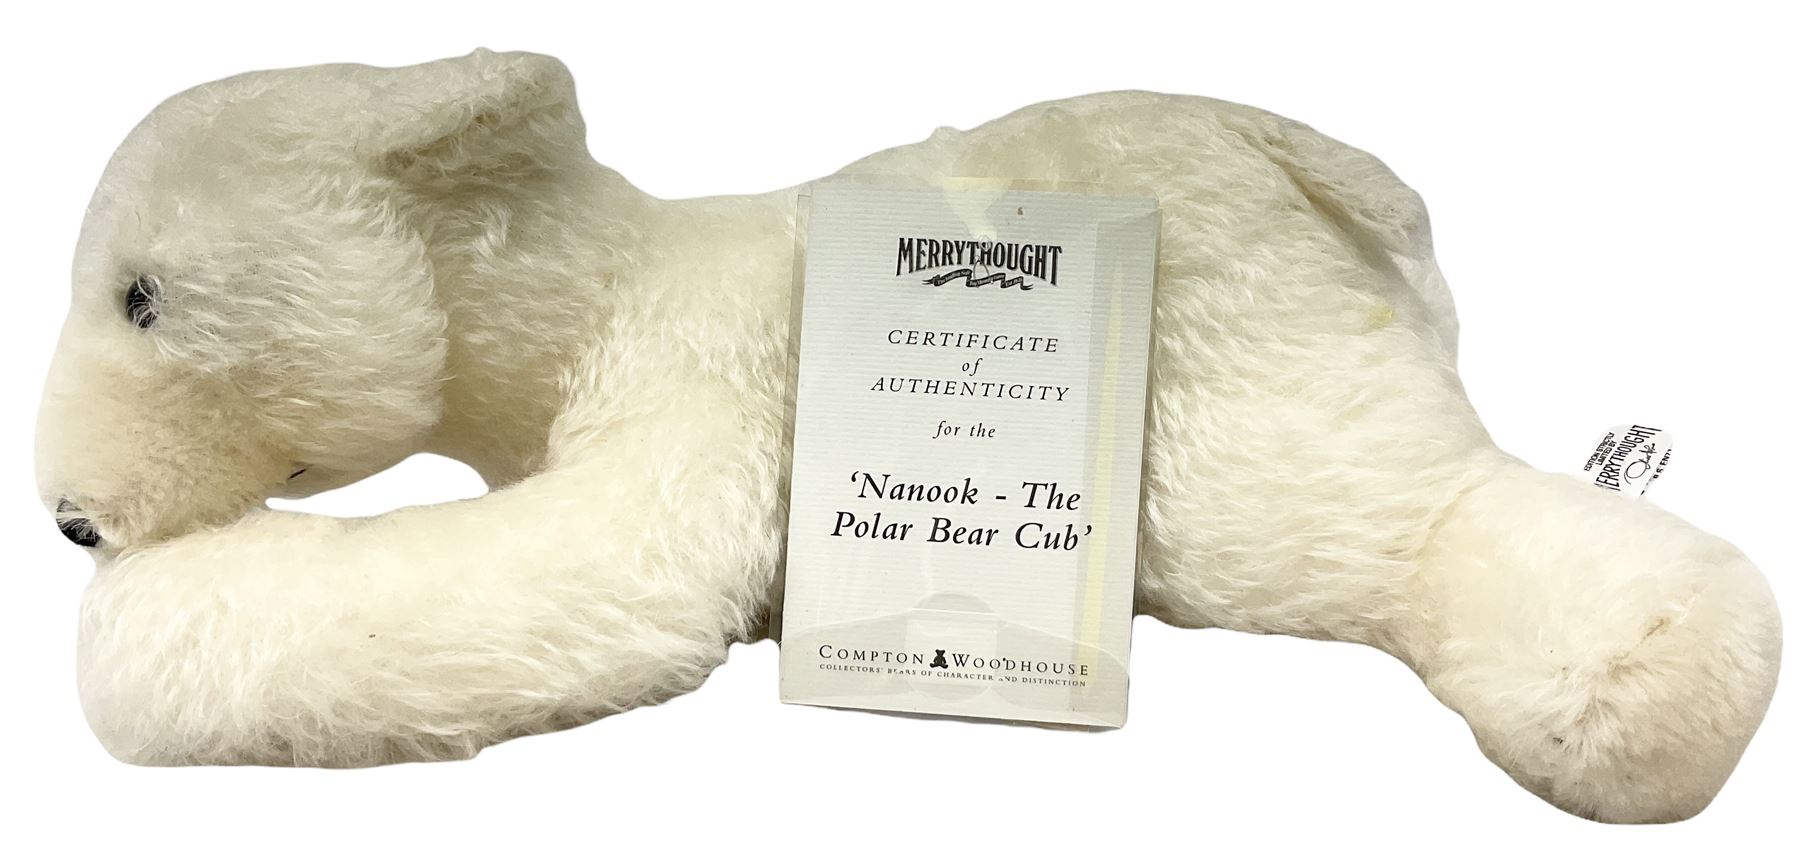 Merrythought - two modern limited edition bears comprising 'Nanook The Polar Bear Club' No.213/2450; - Image 4 of 6